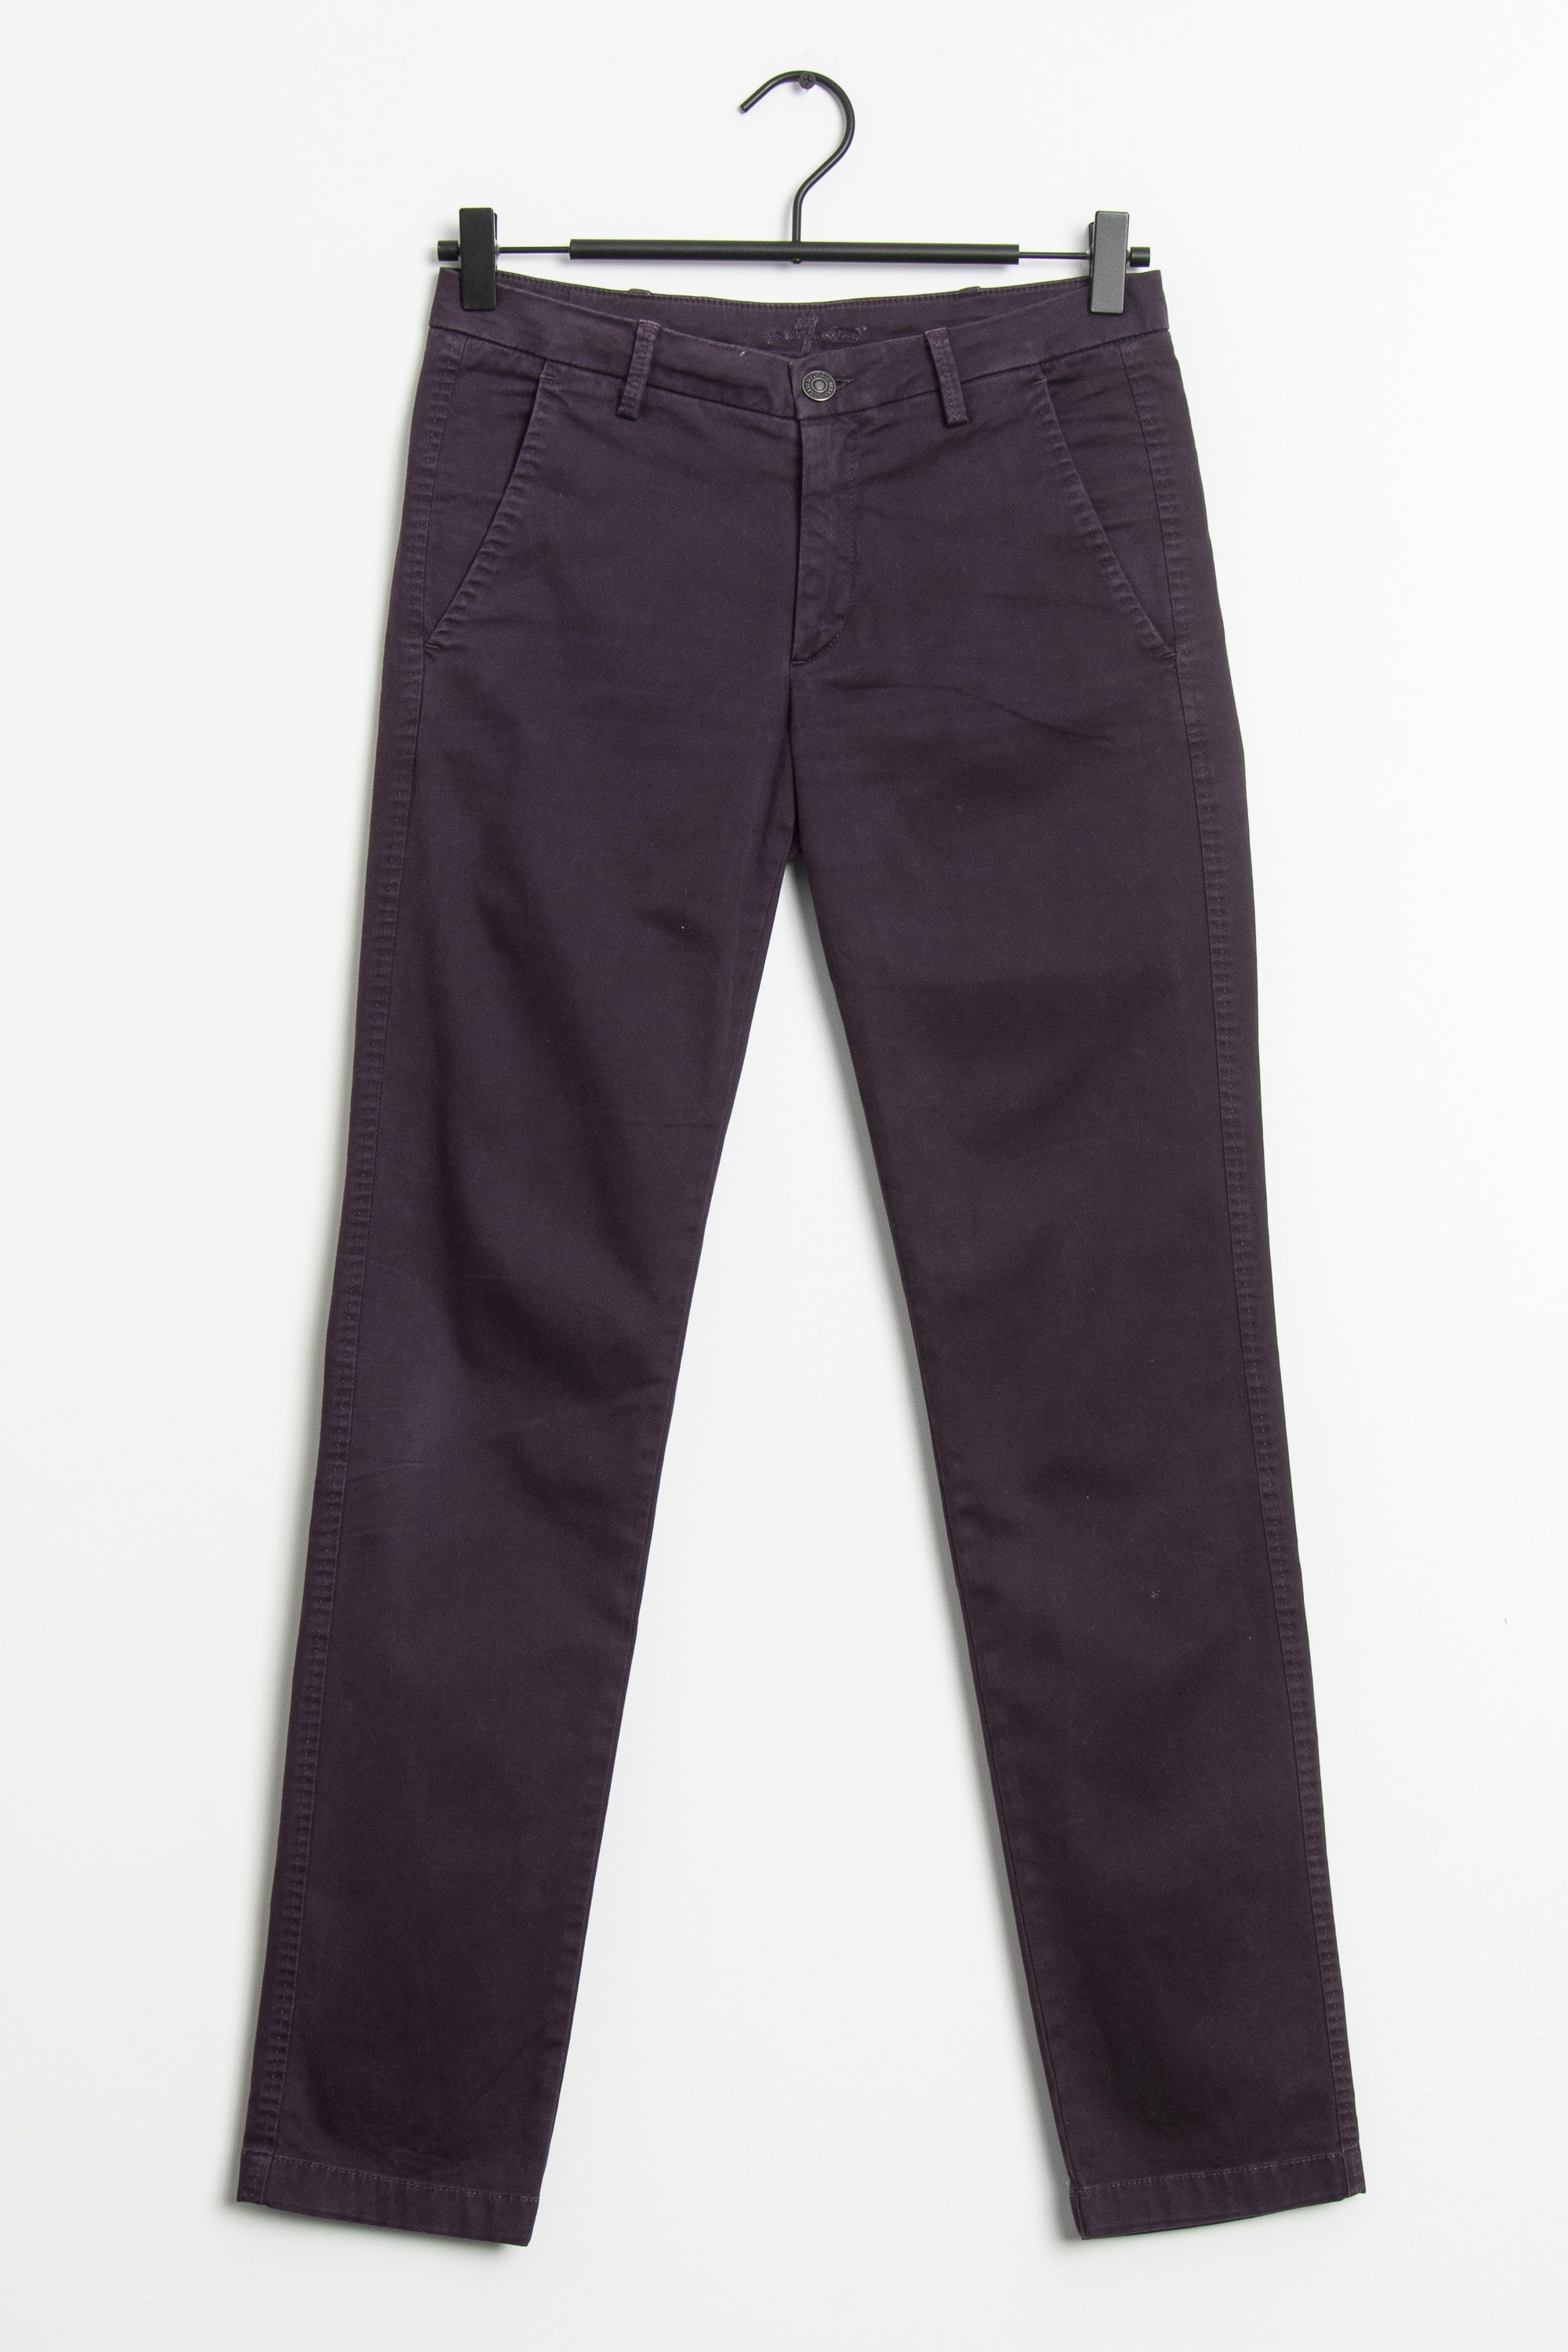 7 for all mankind Stoffhose Lila Gr.XS